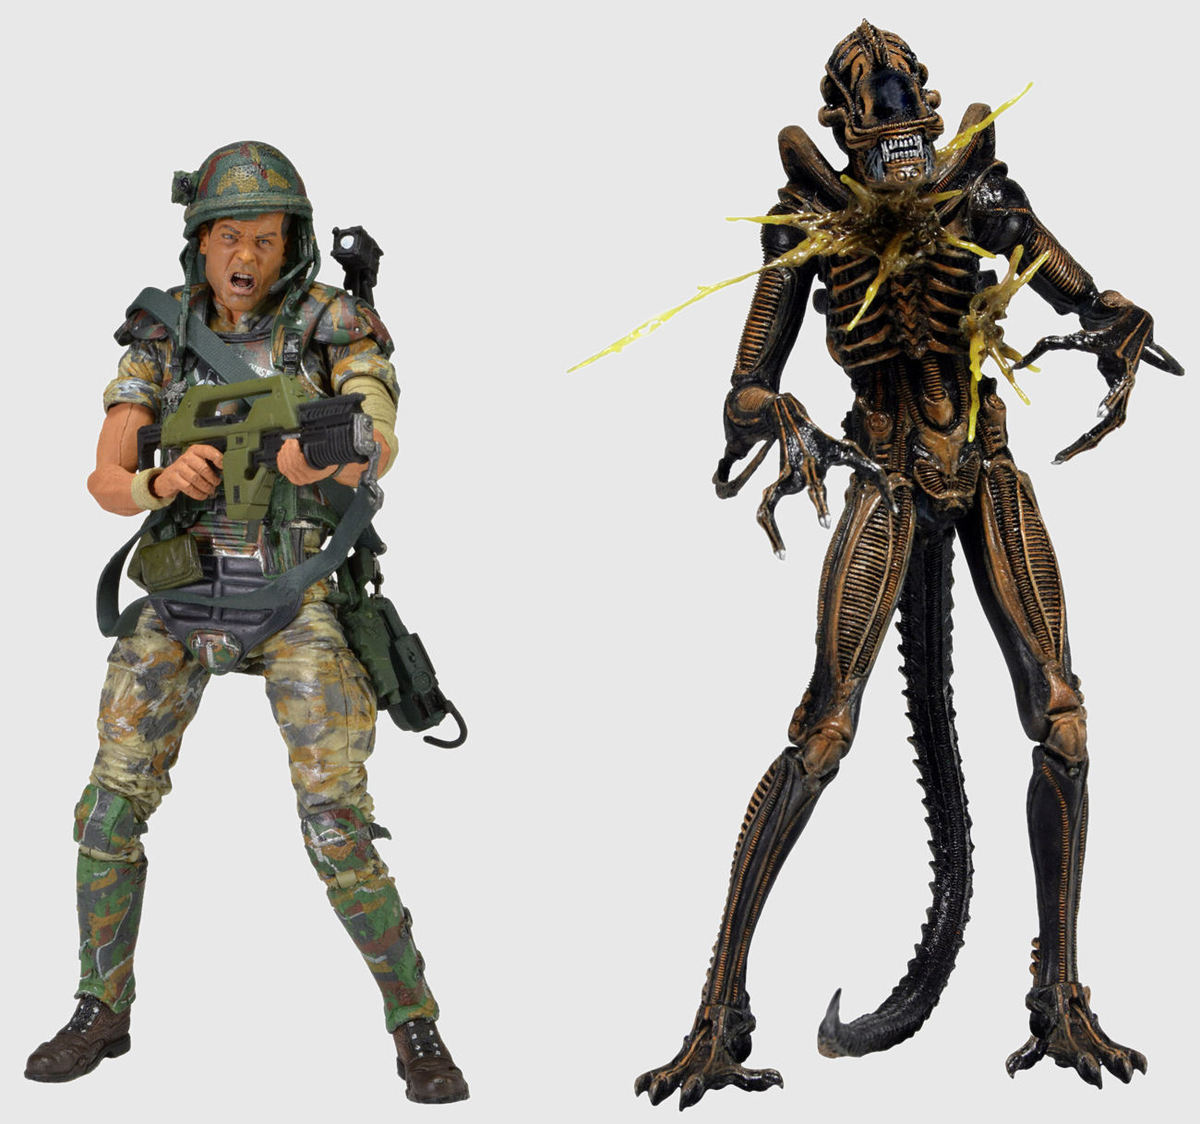 figurka Alien Action - Hudson vs. Battle Damaged Brown Warrior - NECA51397